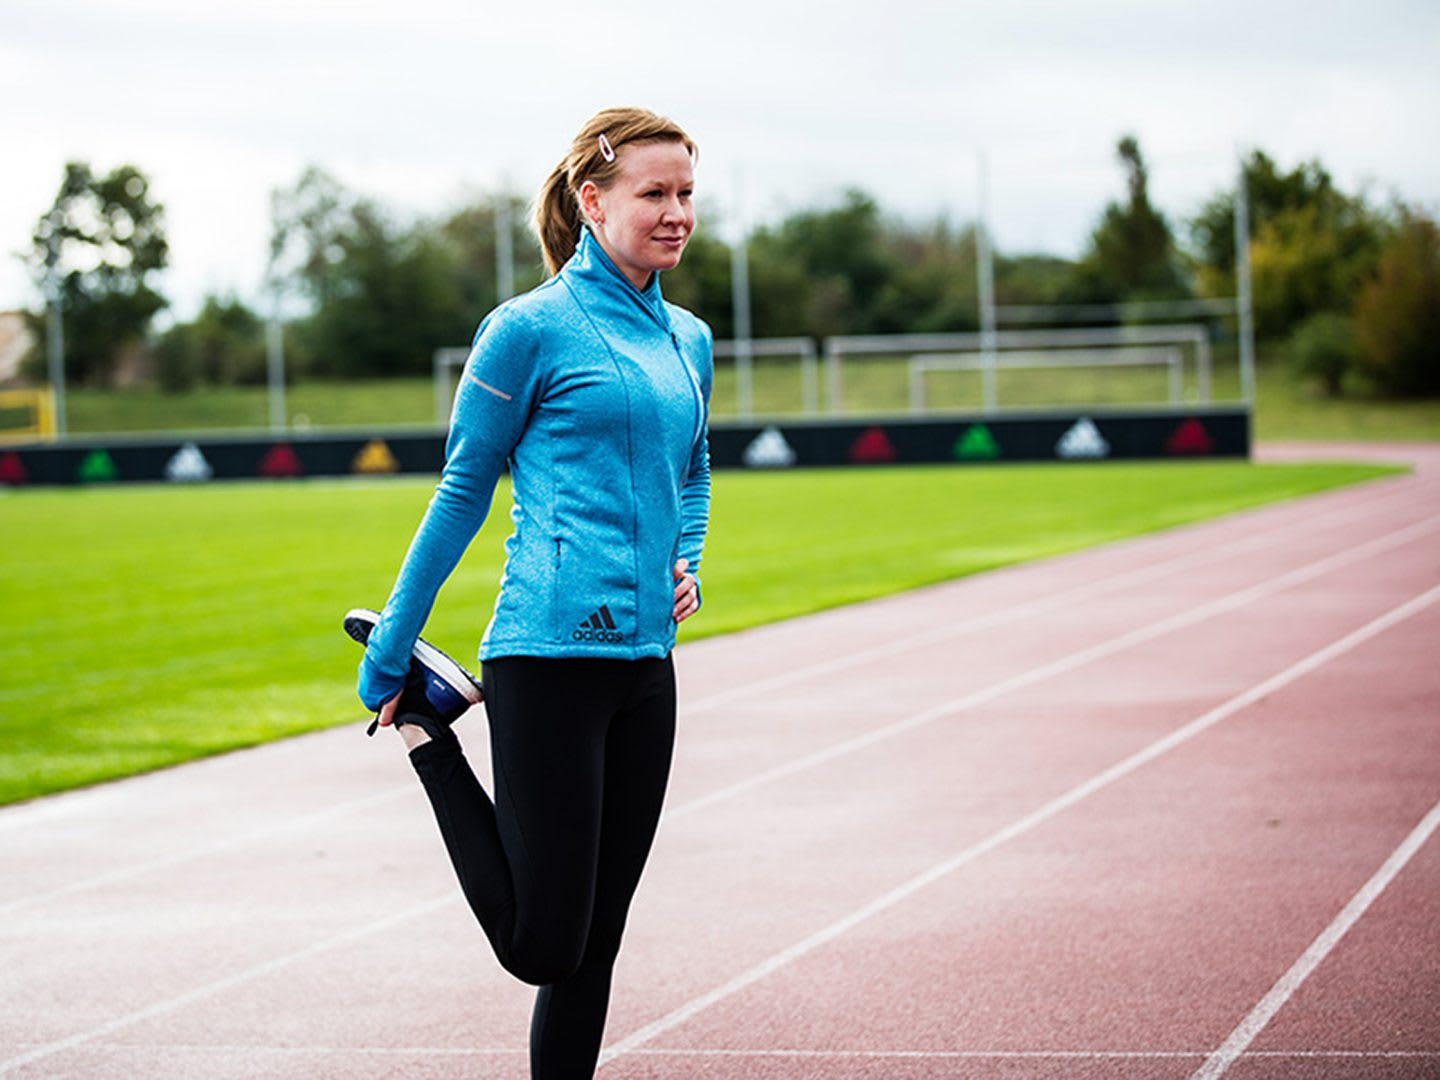 Female stretching on a running track. Dealing with grief. mindfulness, grief, self-reflection, GamePlan A.